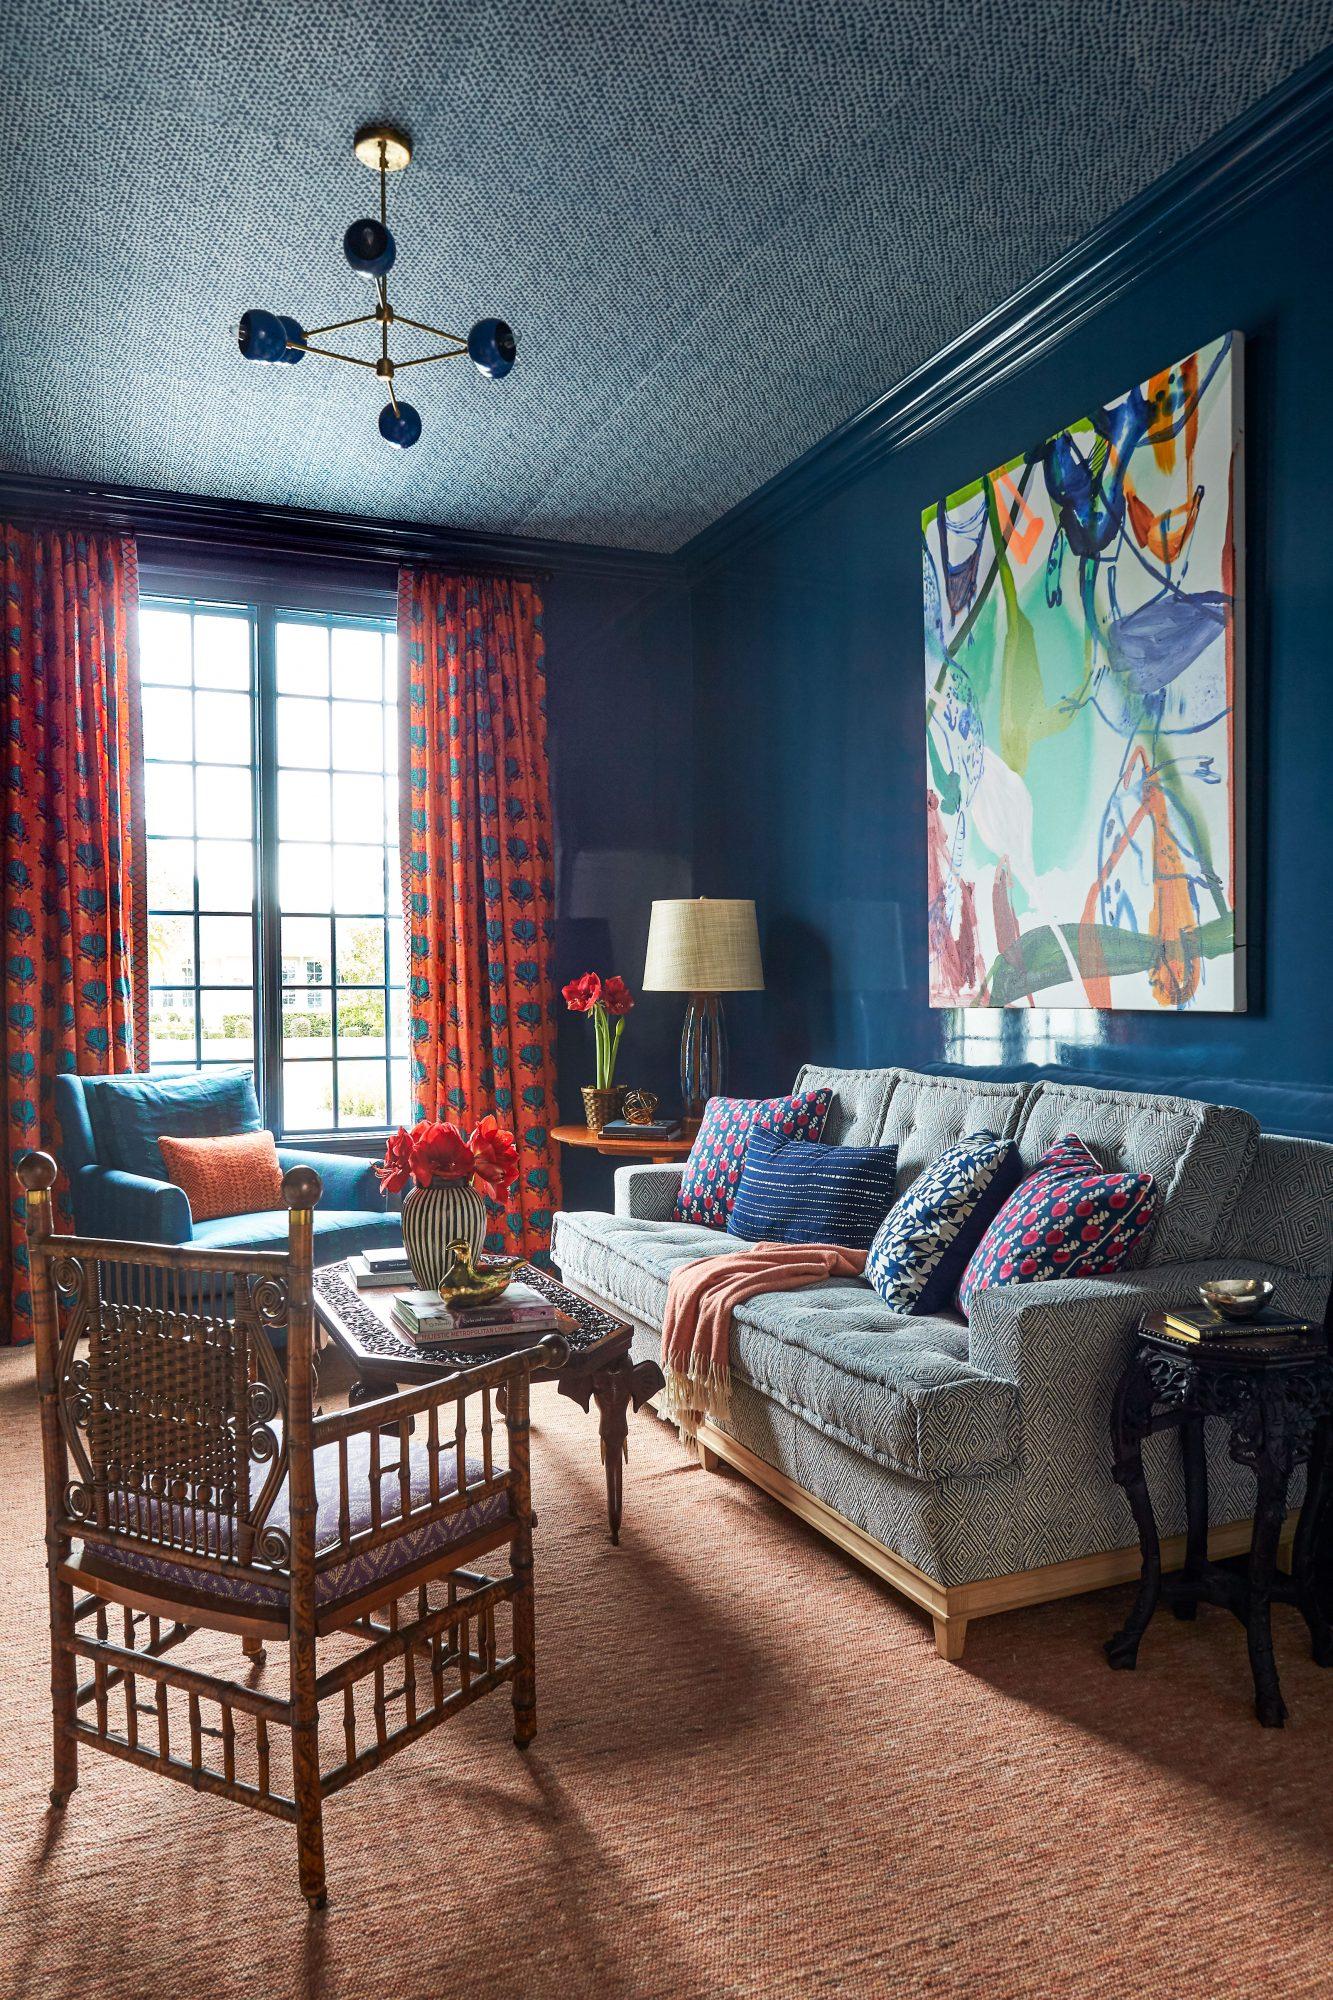 Andrew Howard Home Decorated for Christmas Blue Den/Living Room